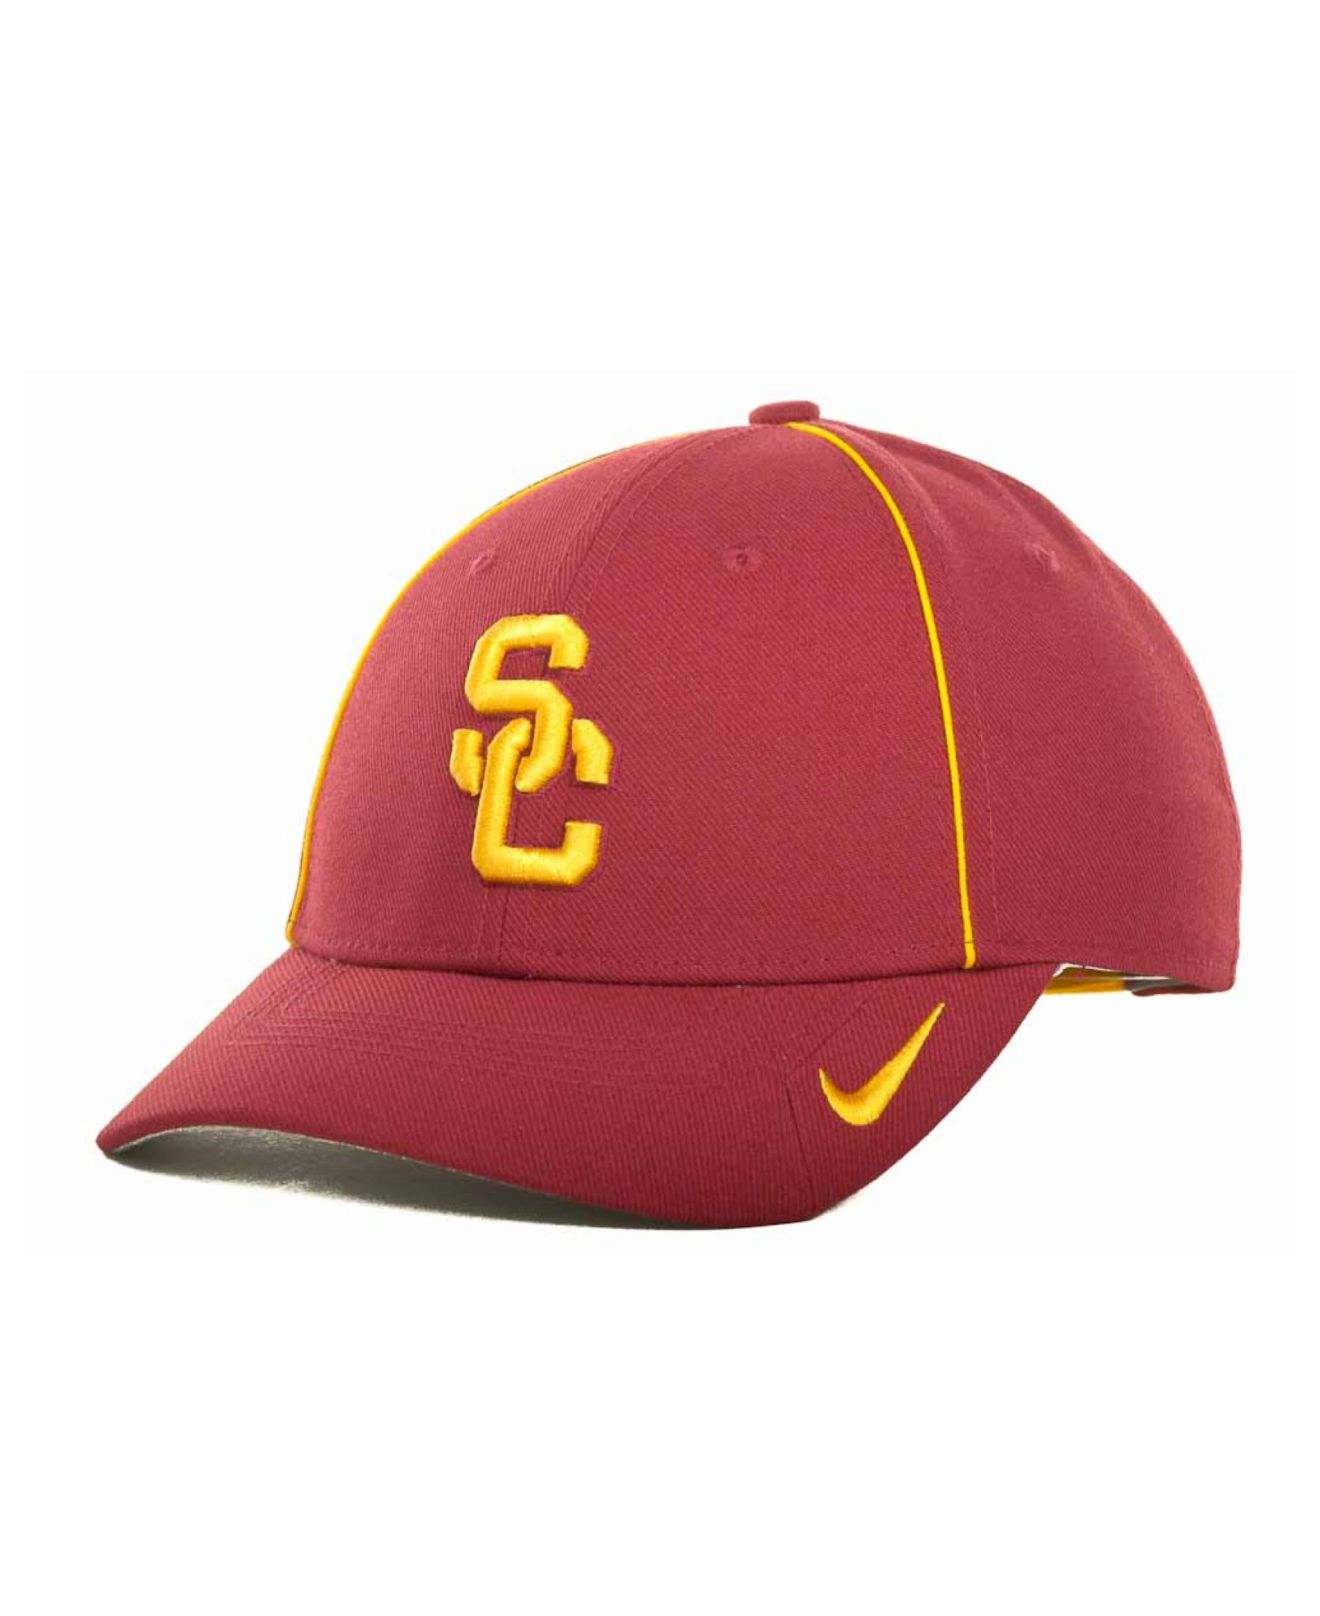 10797ff5d low cost usc boonie hat a5bc7 8a662